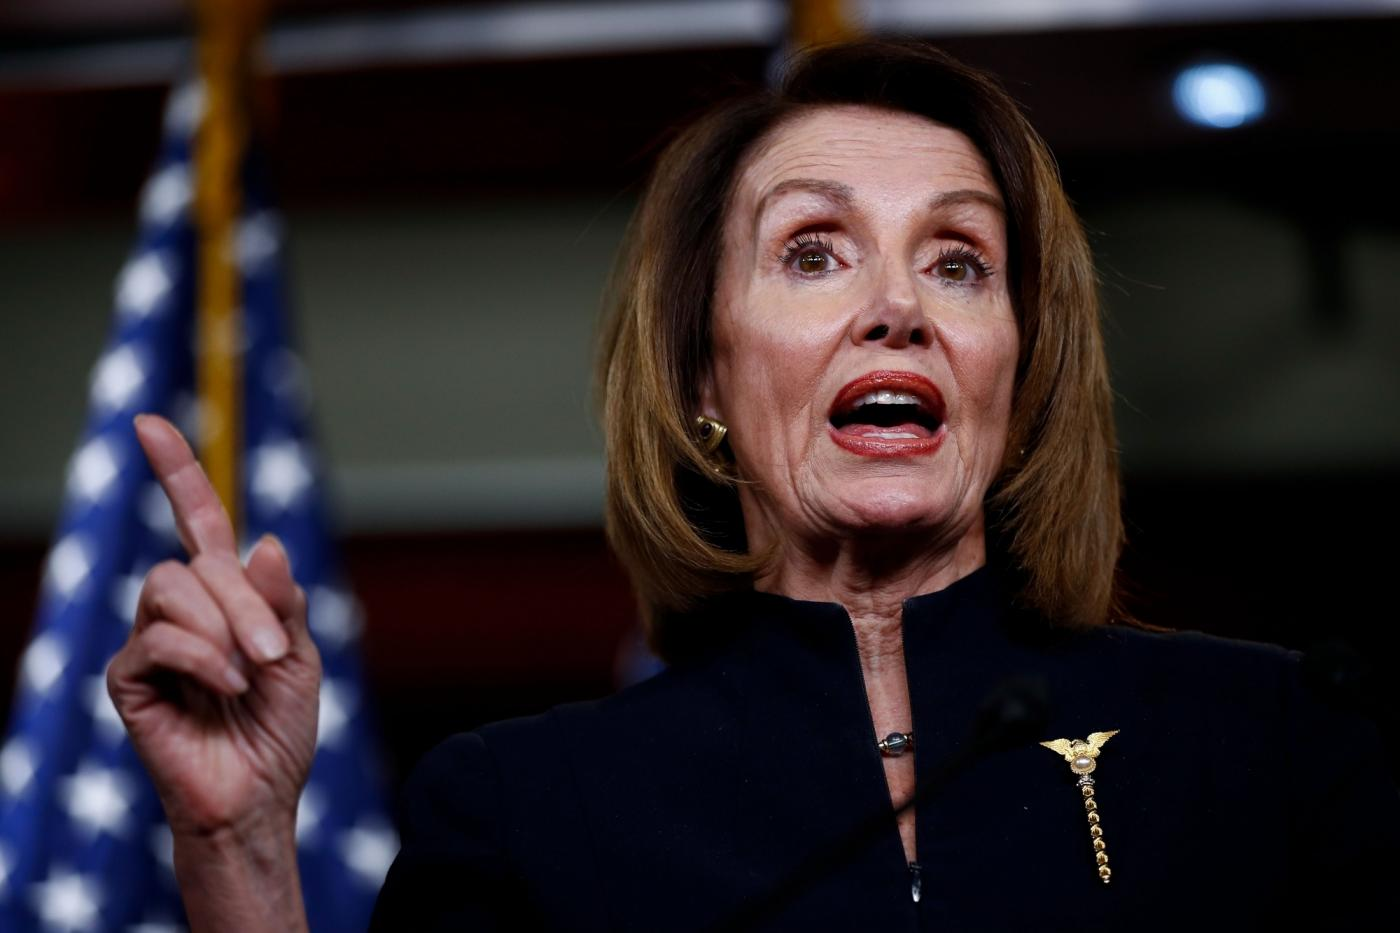 "WASHINGTON, Feb. 14, 2019 (Xinhua) -- U.S. House Speaker Nancy Pelosi speaks during a press conference on Capitol Hill in Washington D.C., the United States, on Feb. 14, 2019. U.S. President Donald Trump is prepared to sign a bipartisan bill on spending and border security to avert another government shutdown, but also declare a national emergency to obtain funds for his long-promised border wall, the White House said Thursday. Nancy Pelosi, the top Democrat in the House, said her party is ""reviewing our options"" in responding to the anticipated emergency declaration. (Xinhua/Ting Shen/IANS) by ."